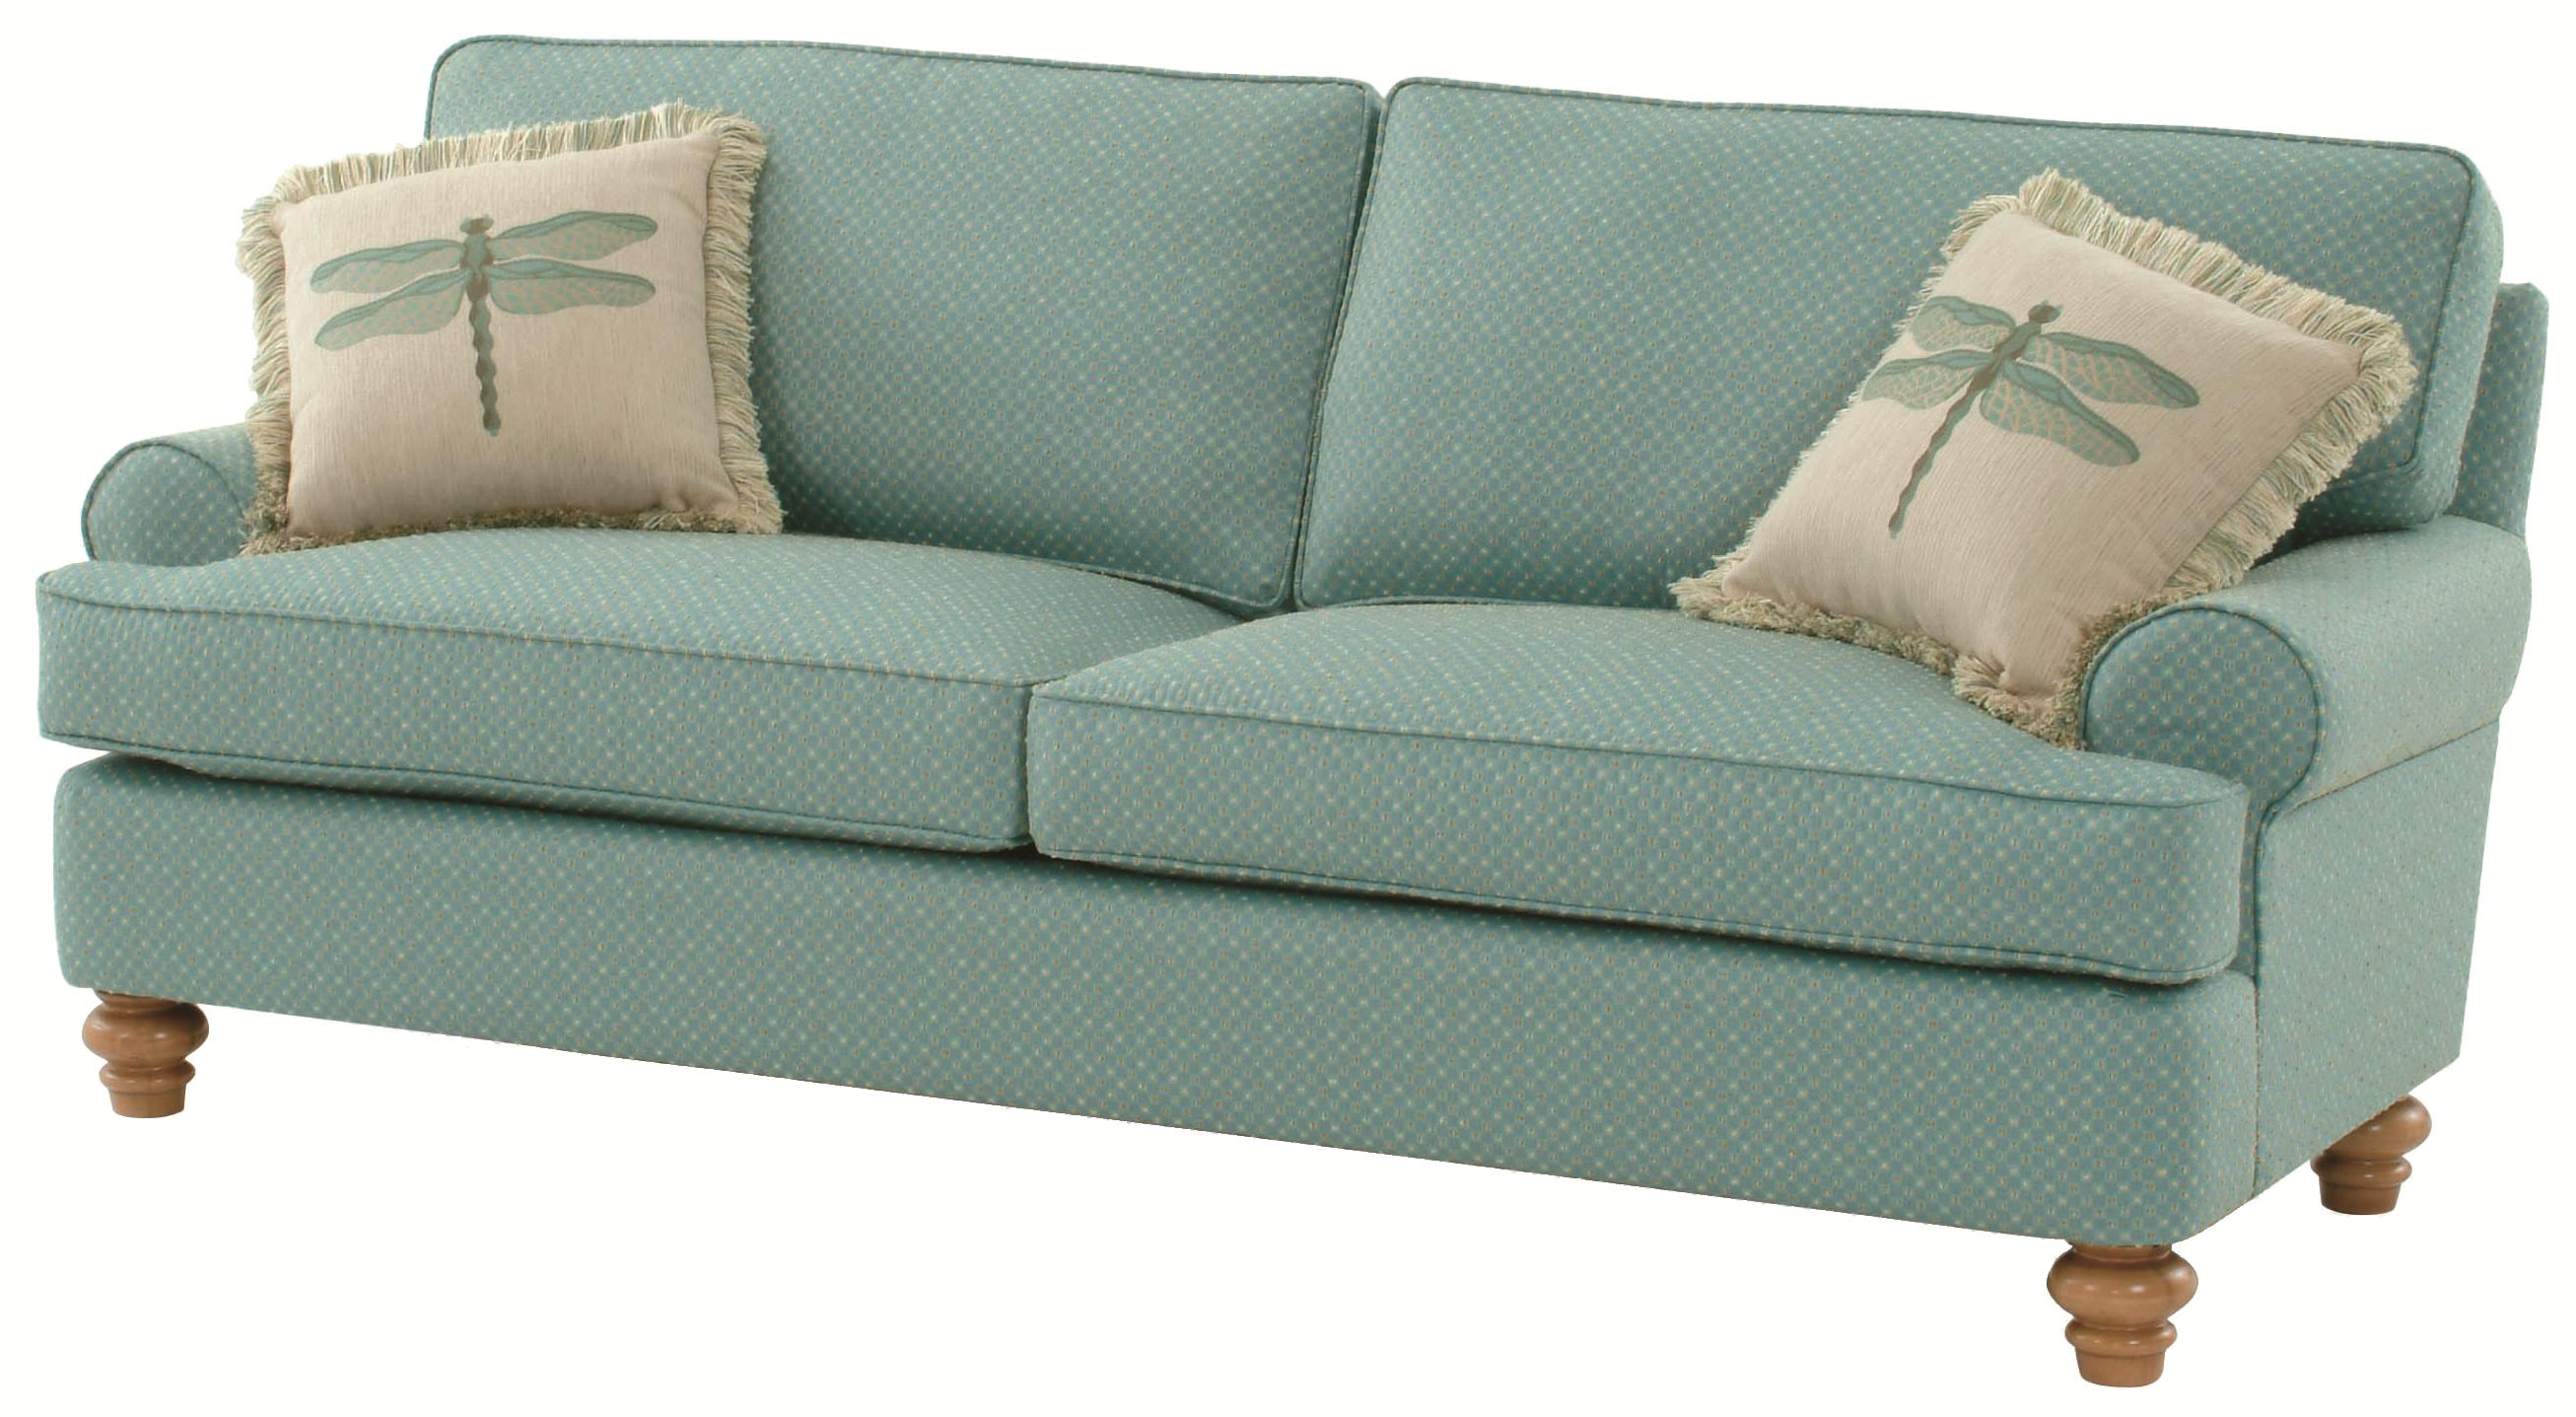 773 Lowell Stationary Sofa by Braxton Culler at Alison Craig Home Furnishings